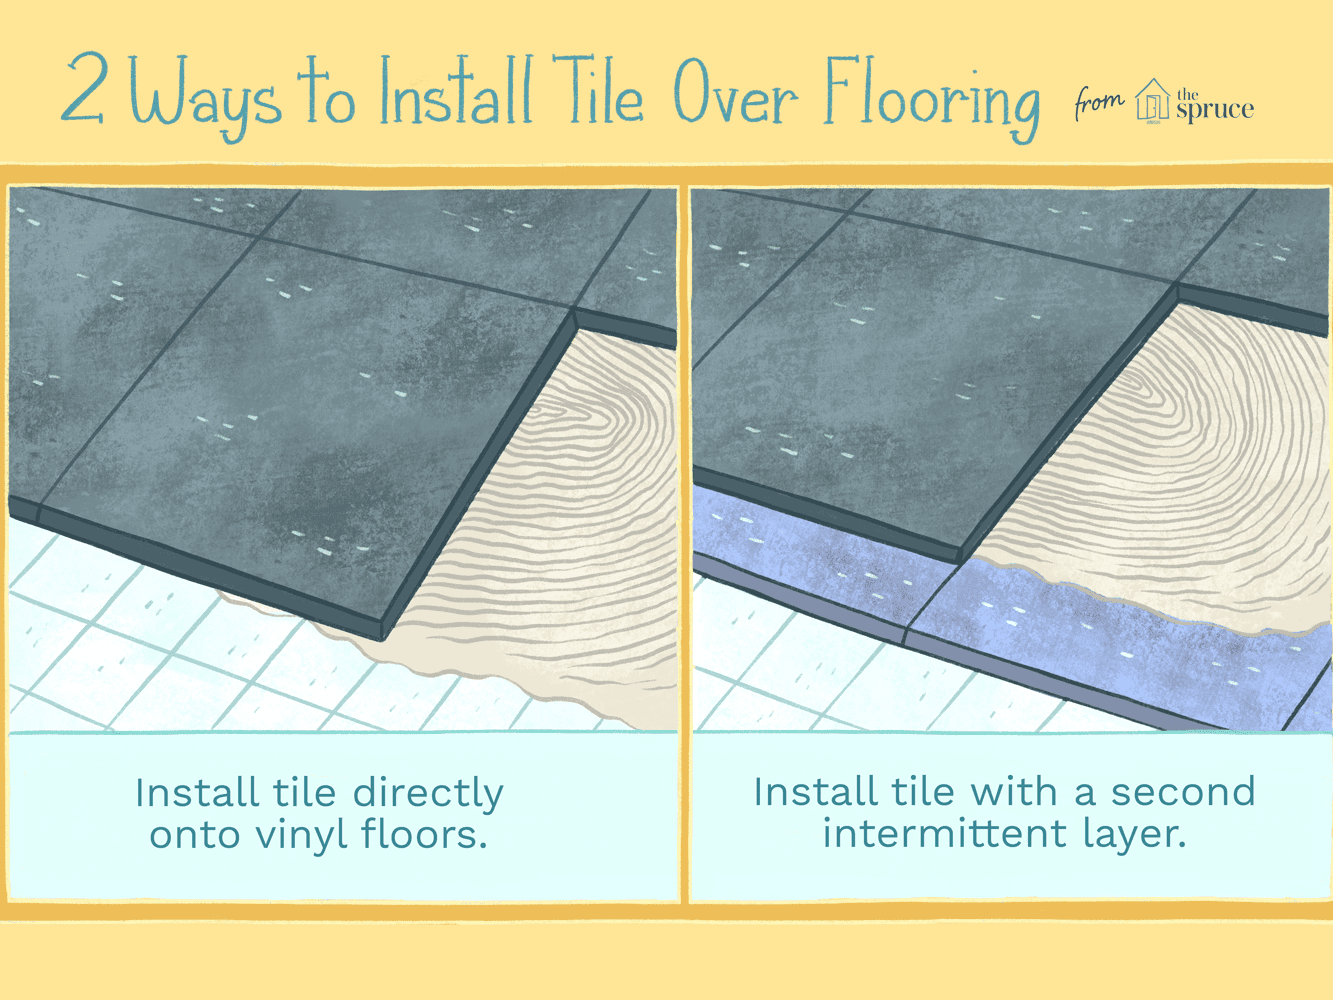 How To Install Tile Over Vinyl Or Linoleum Flooring